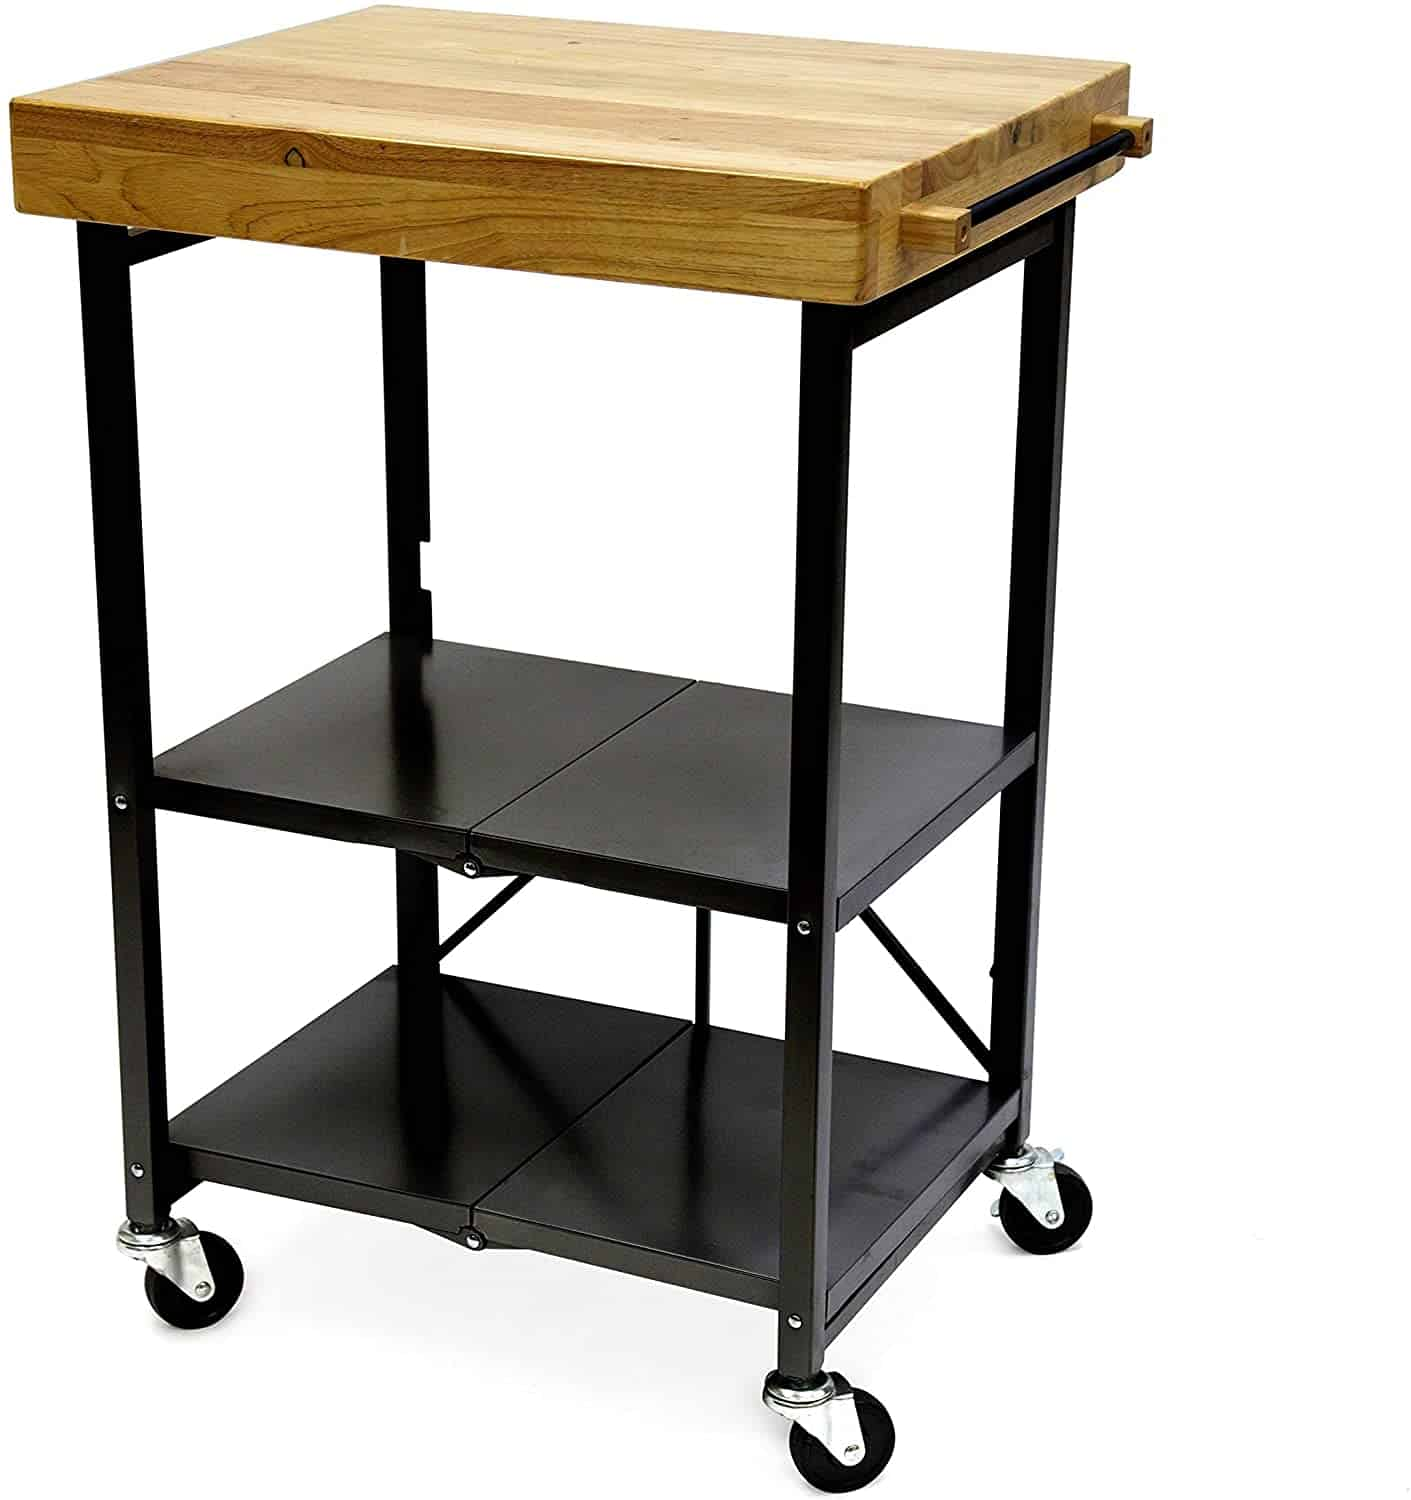 Origami Folding Kitchen Cart on Wheels